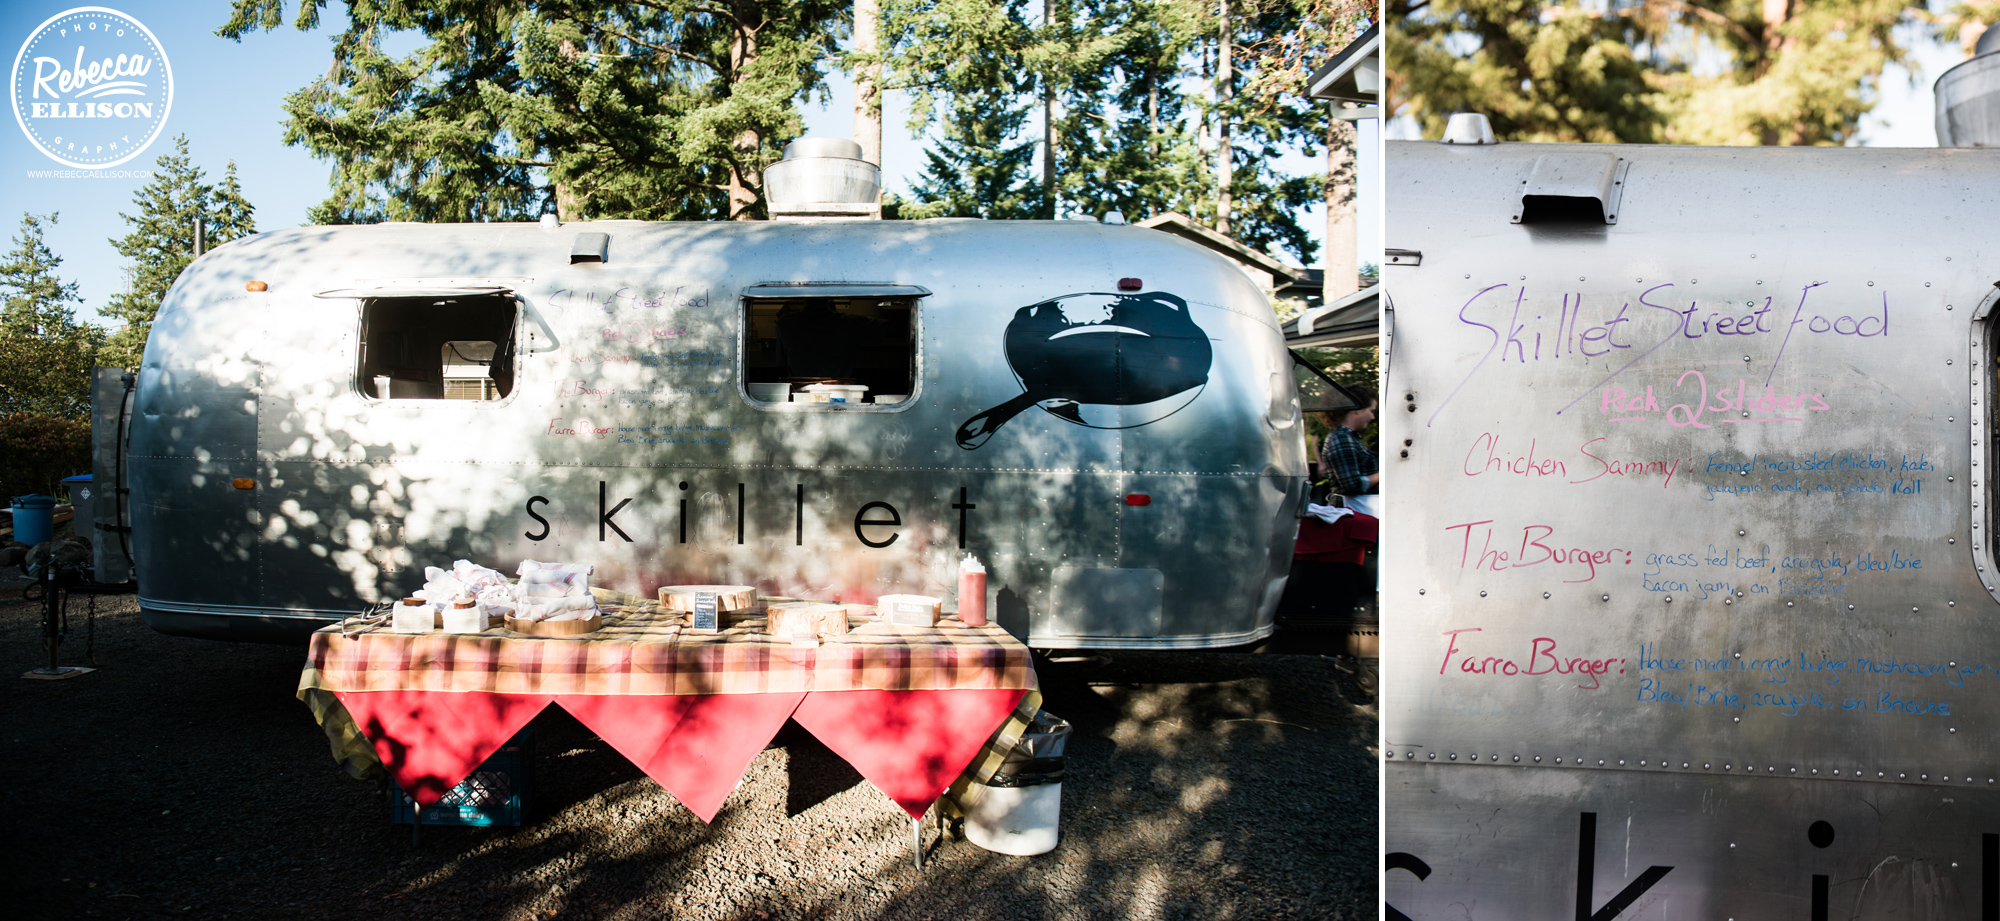 Vintage Food truck at a backyard beach house wedding near seattle photographed by Seattle wedding photographer rebecca ellison